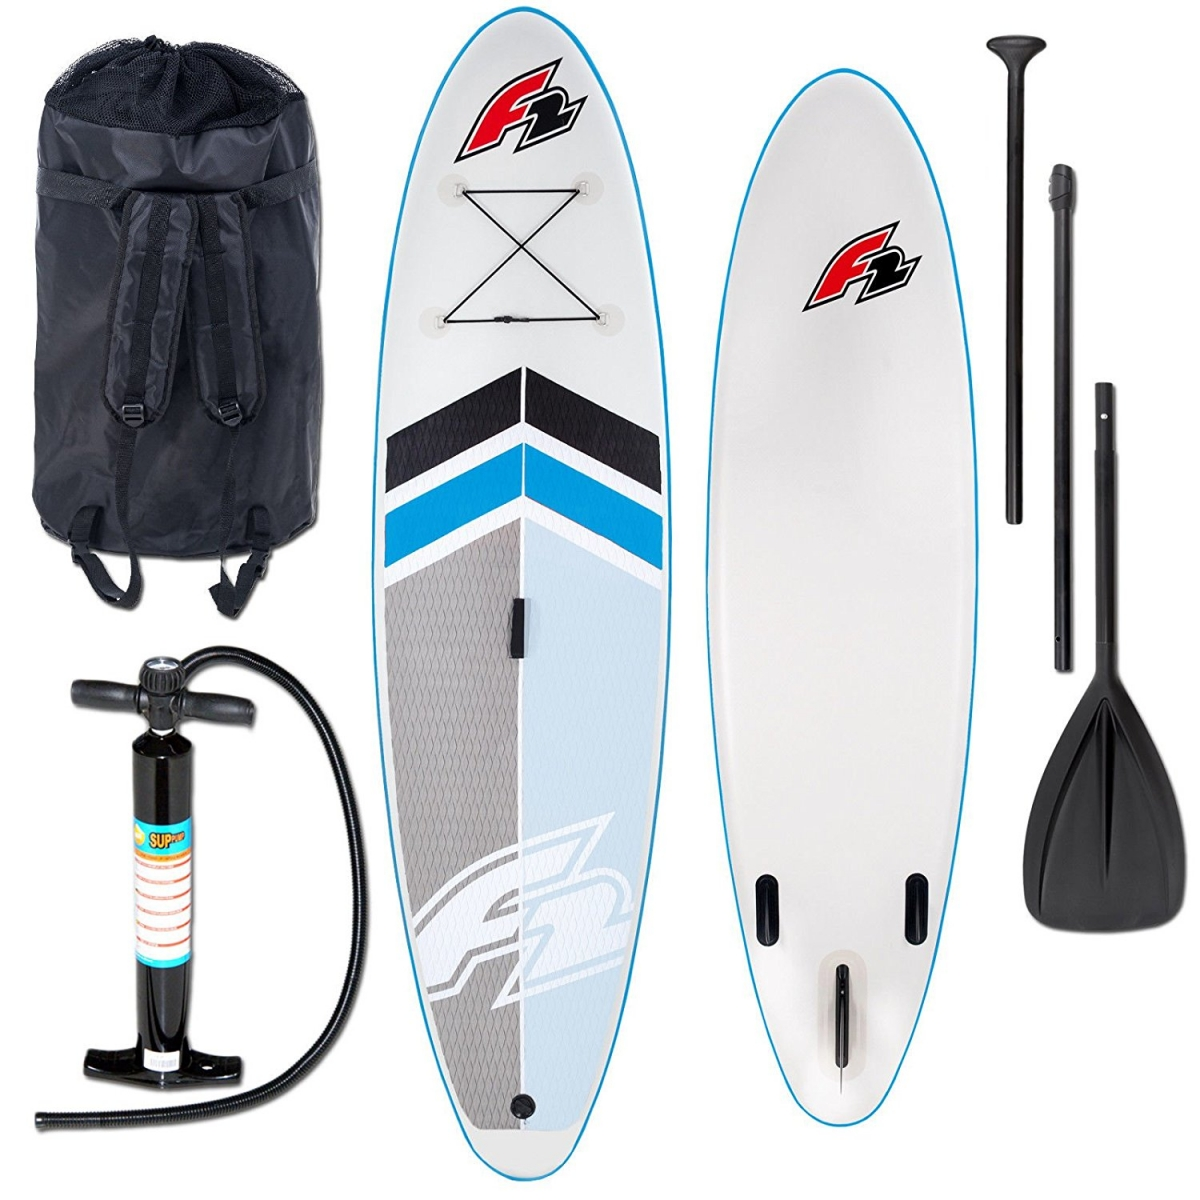 F2 Team Stand Up Paddle Board Lightweight Sup Paddle